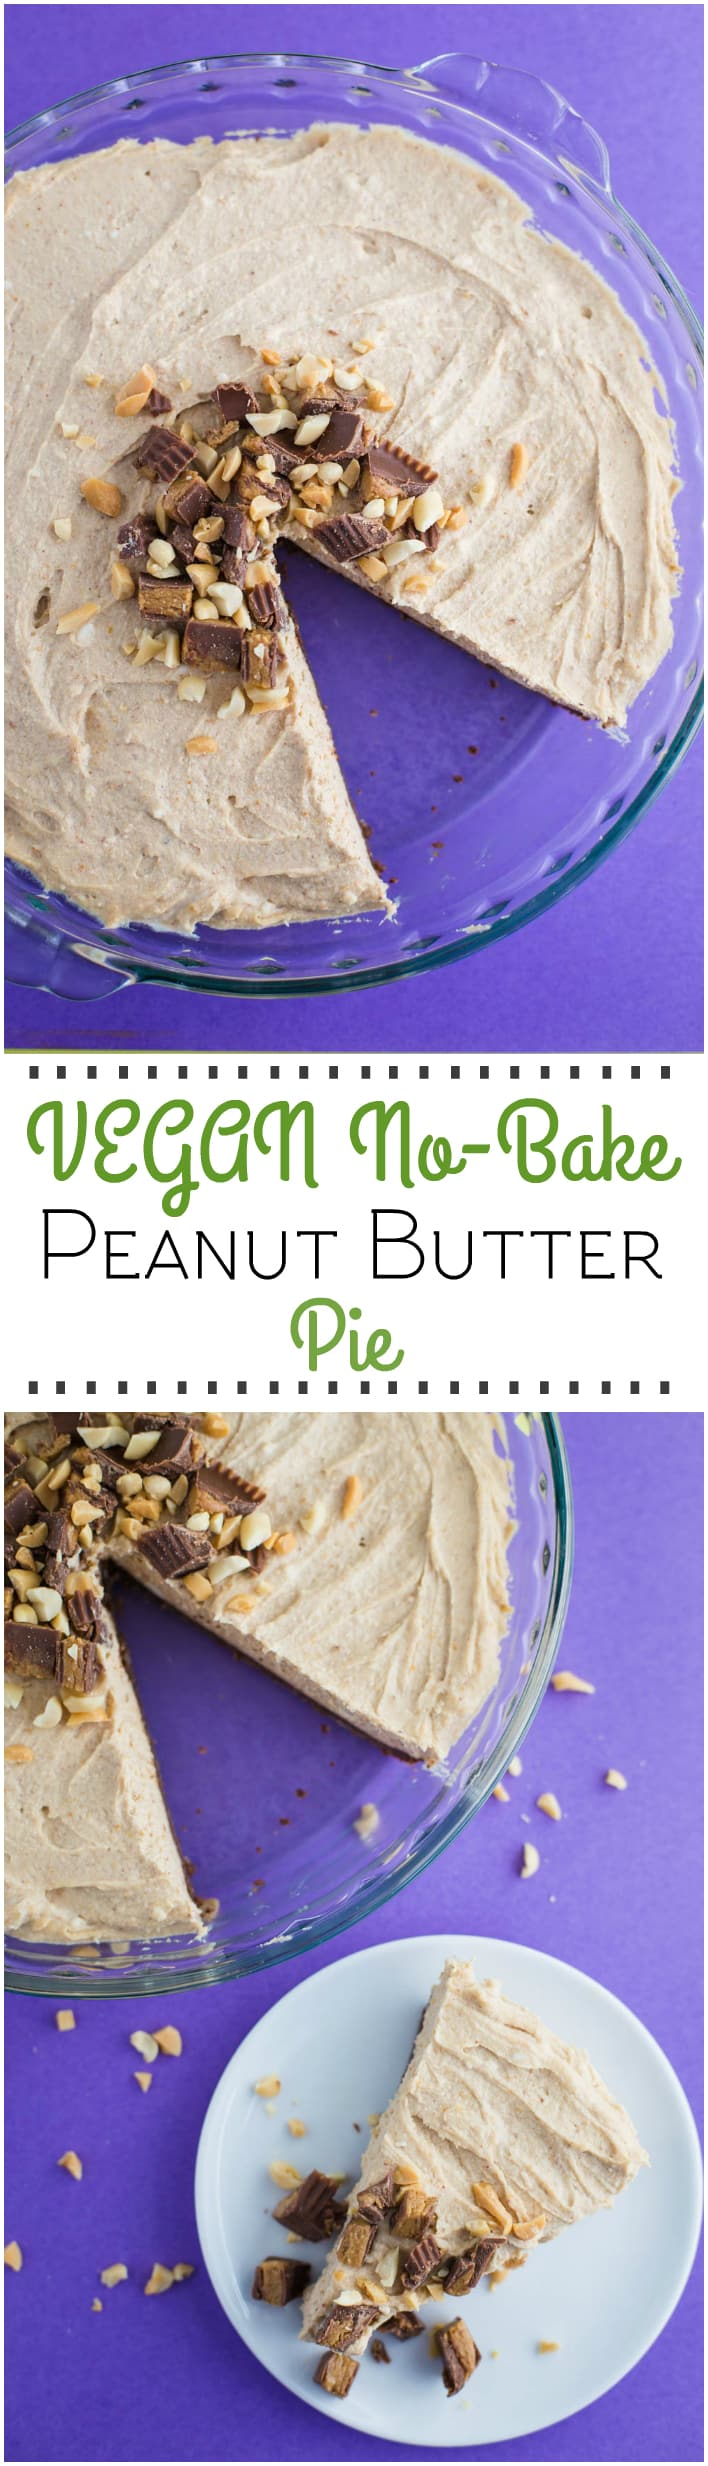 Vegan No Bake Peanut Butter Pie